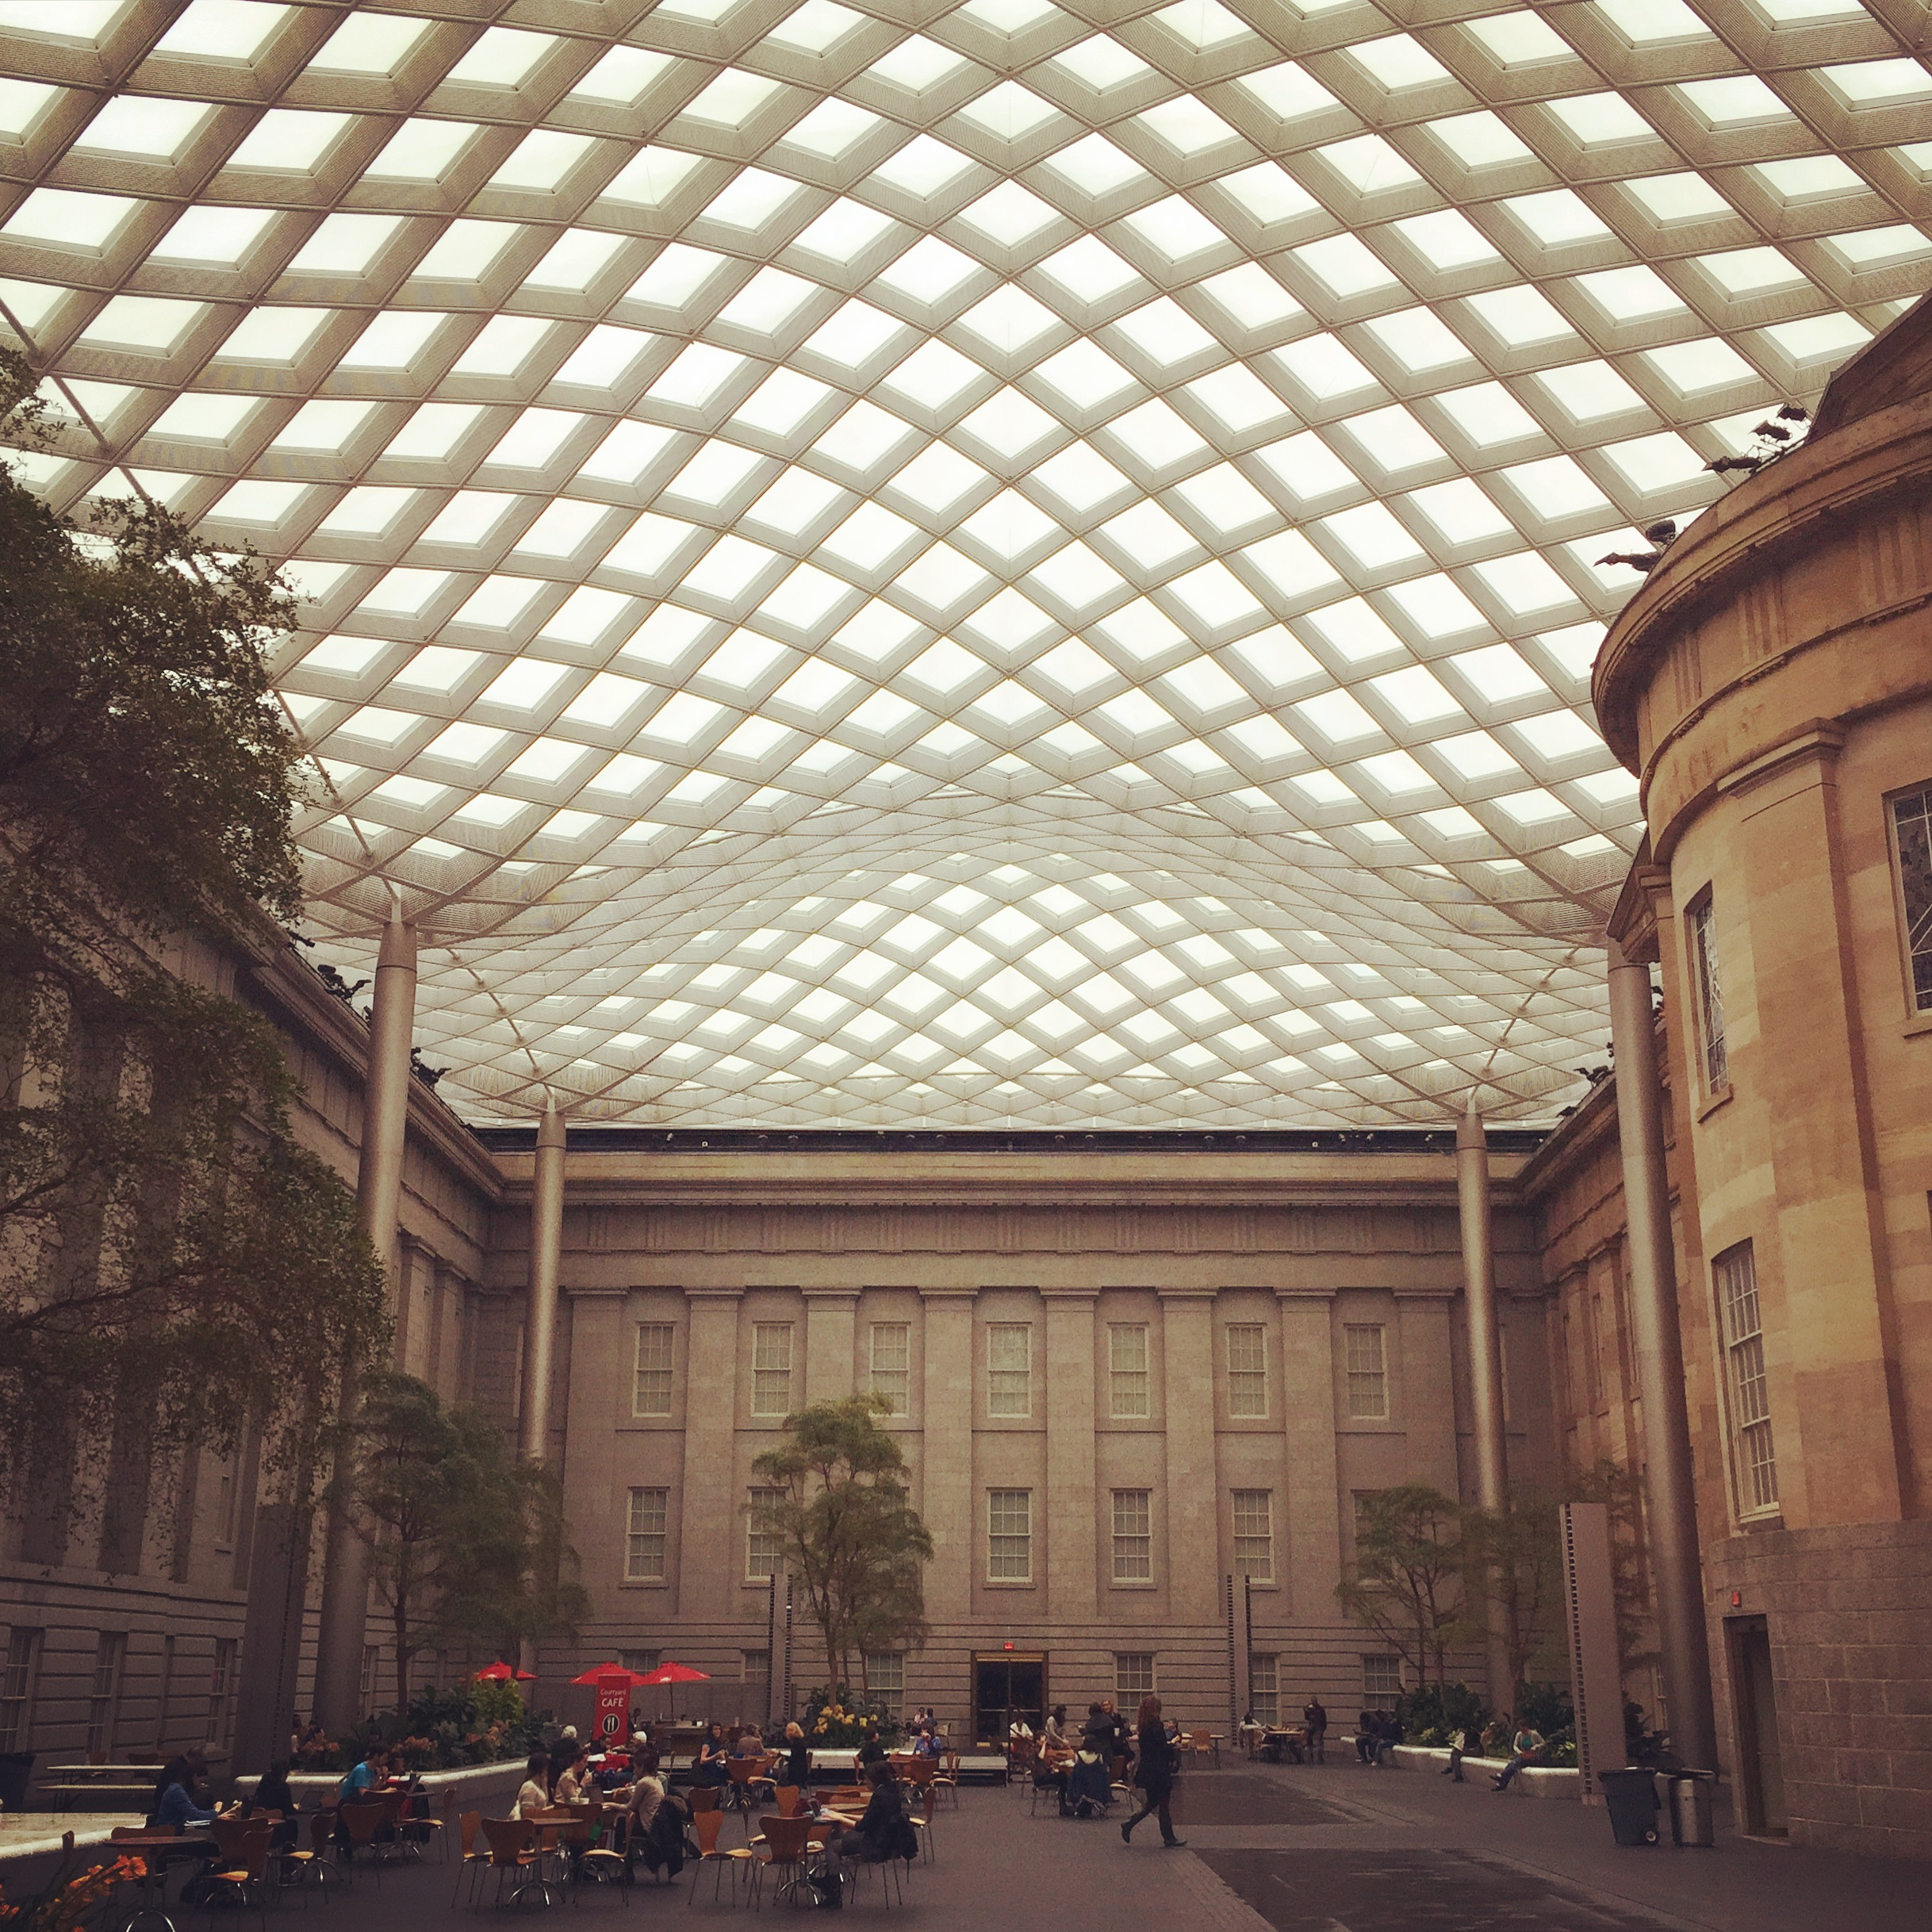 Before hitting the road, my client and I took a spin through the National Portrait Gallery since neither of us had ever been. This is its stunning courtyard, which we agreed would make for a killer party spot.